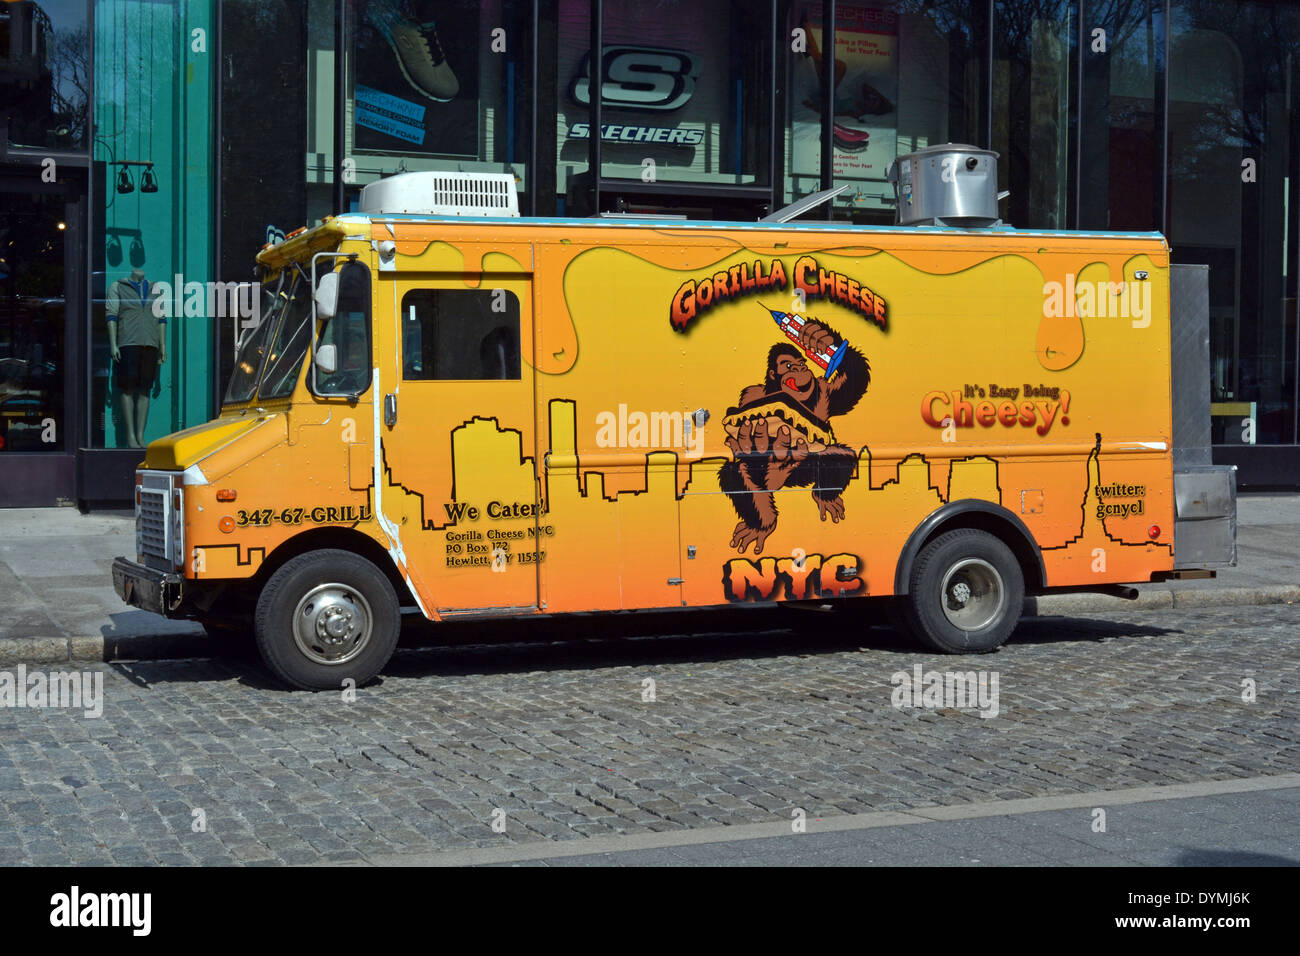 Gorilla Cheese mobile food truck on the streets of New York City near Union Square Park. - Stock Image